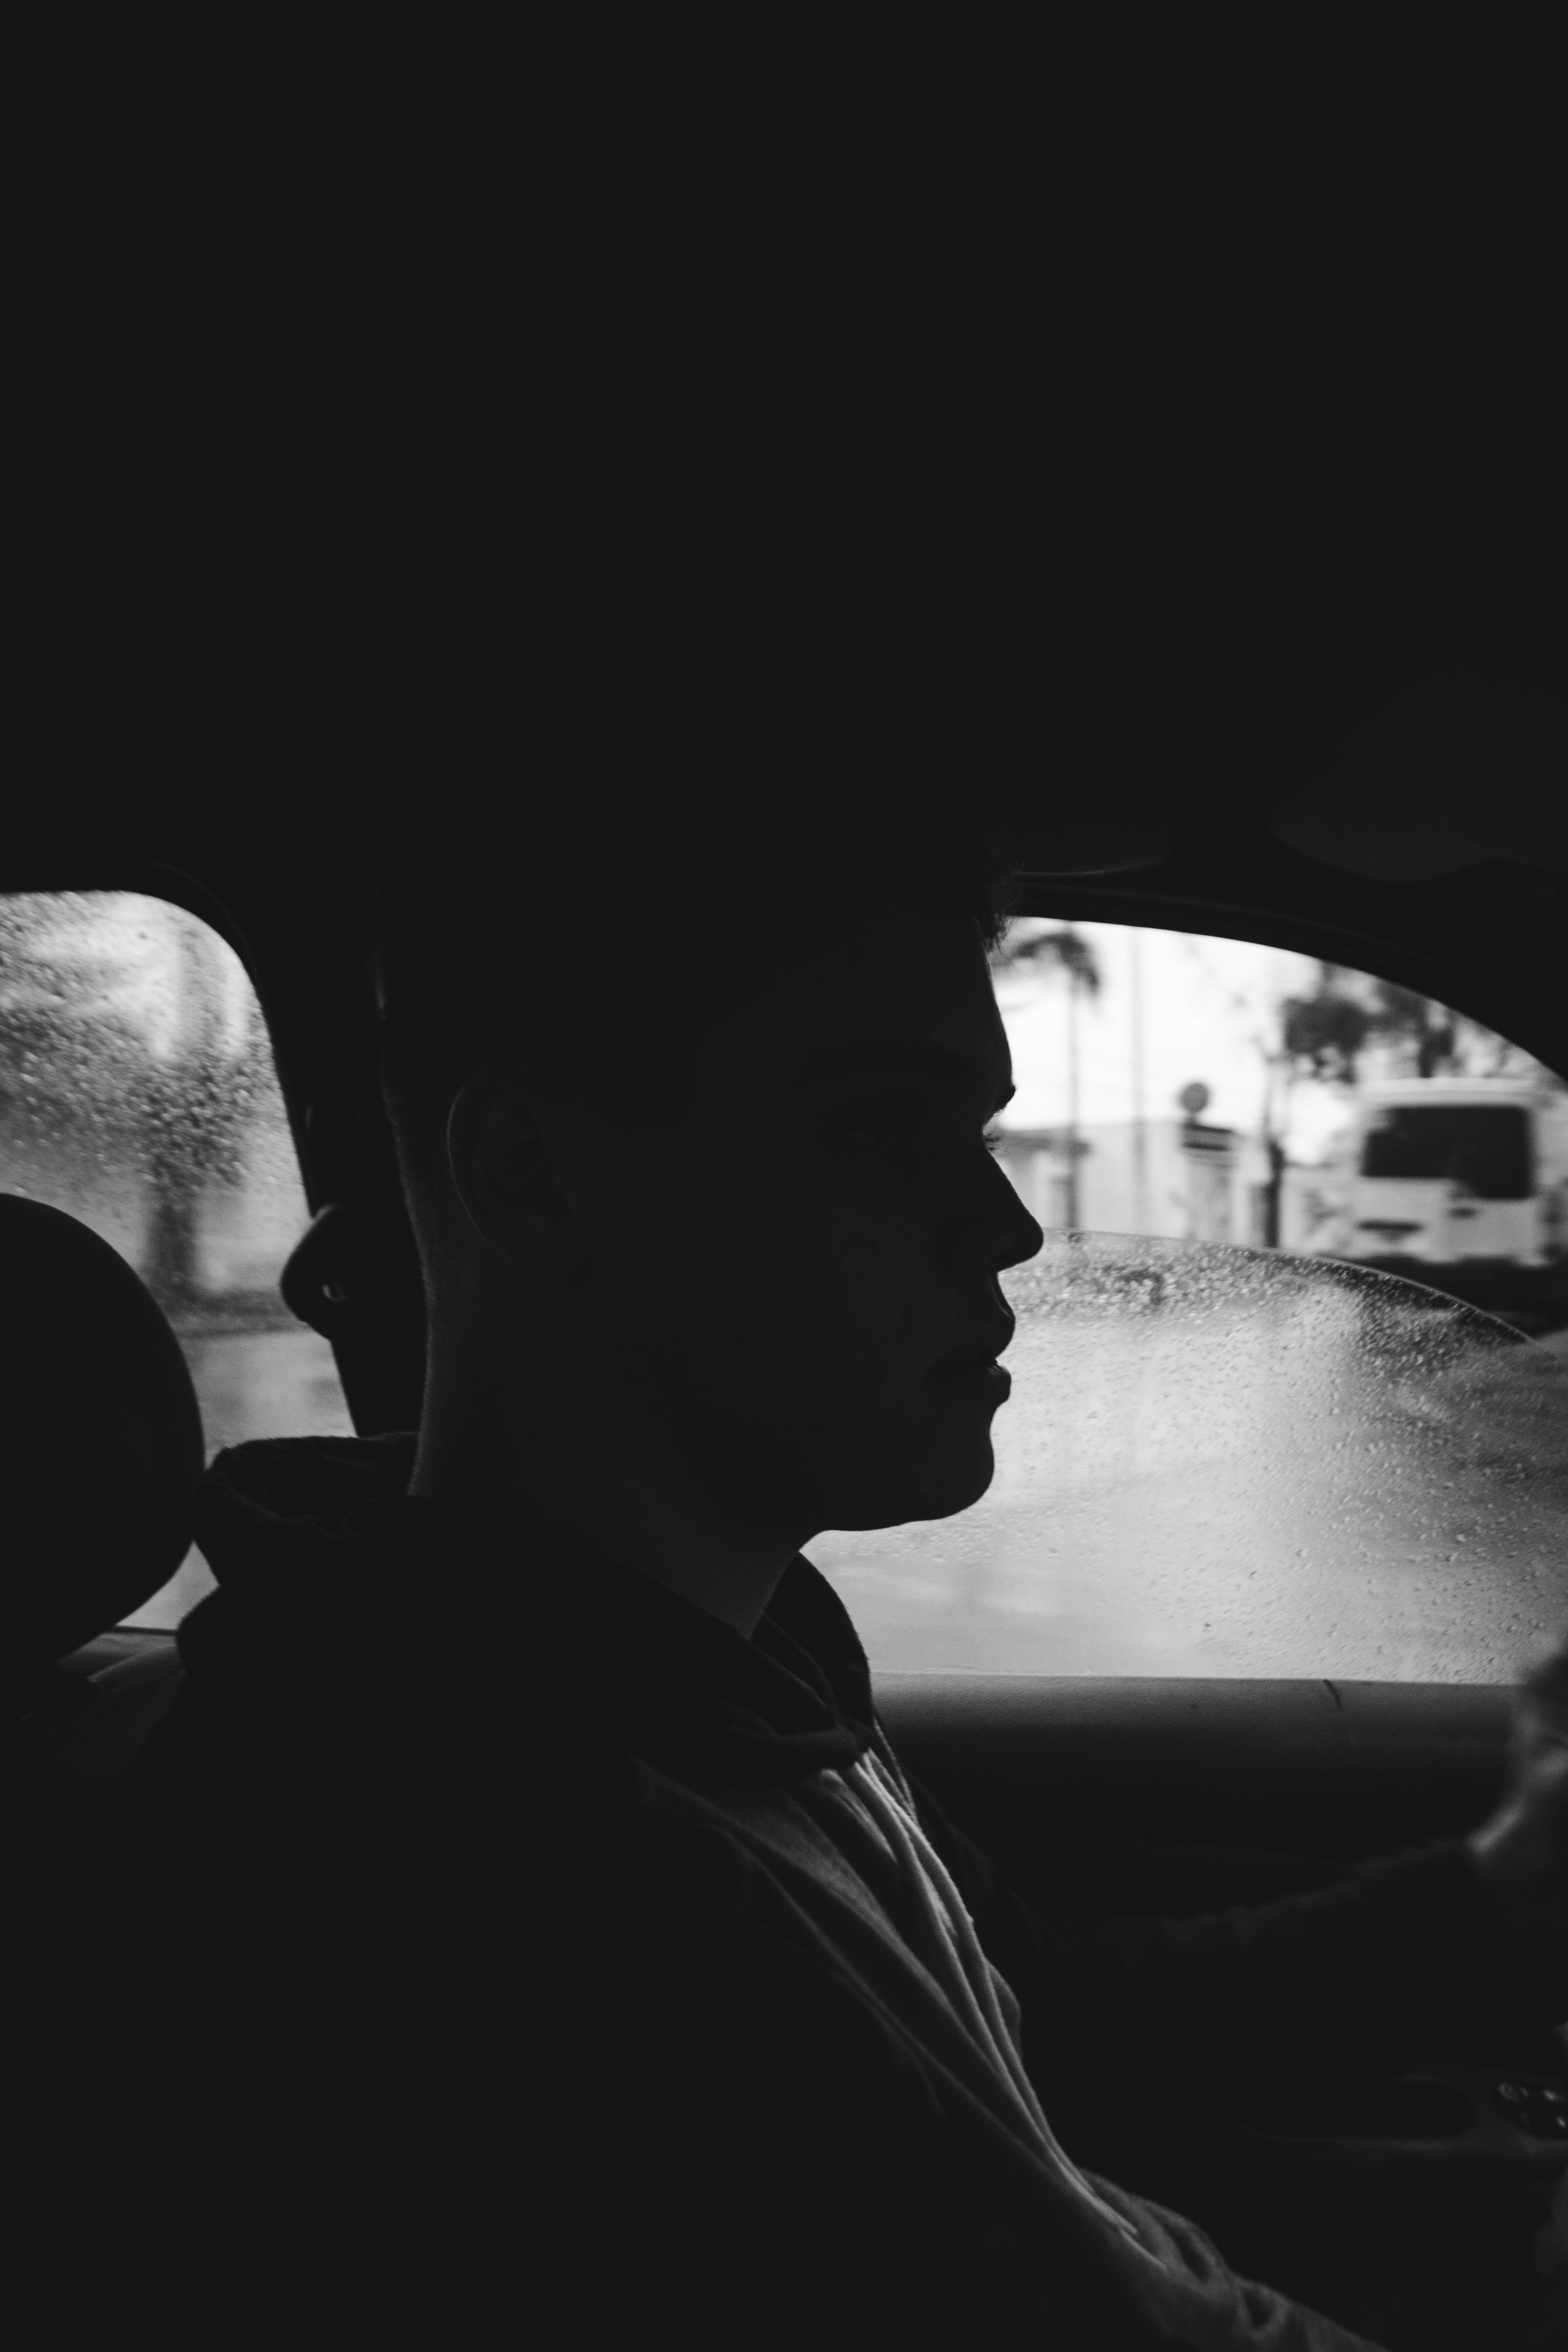 grayscale photography of man inside car